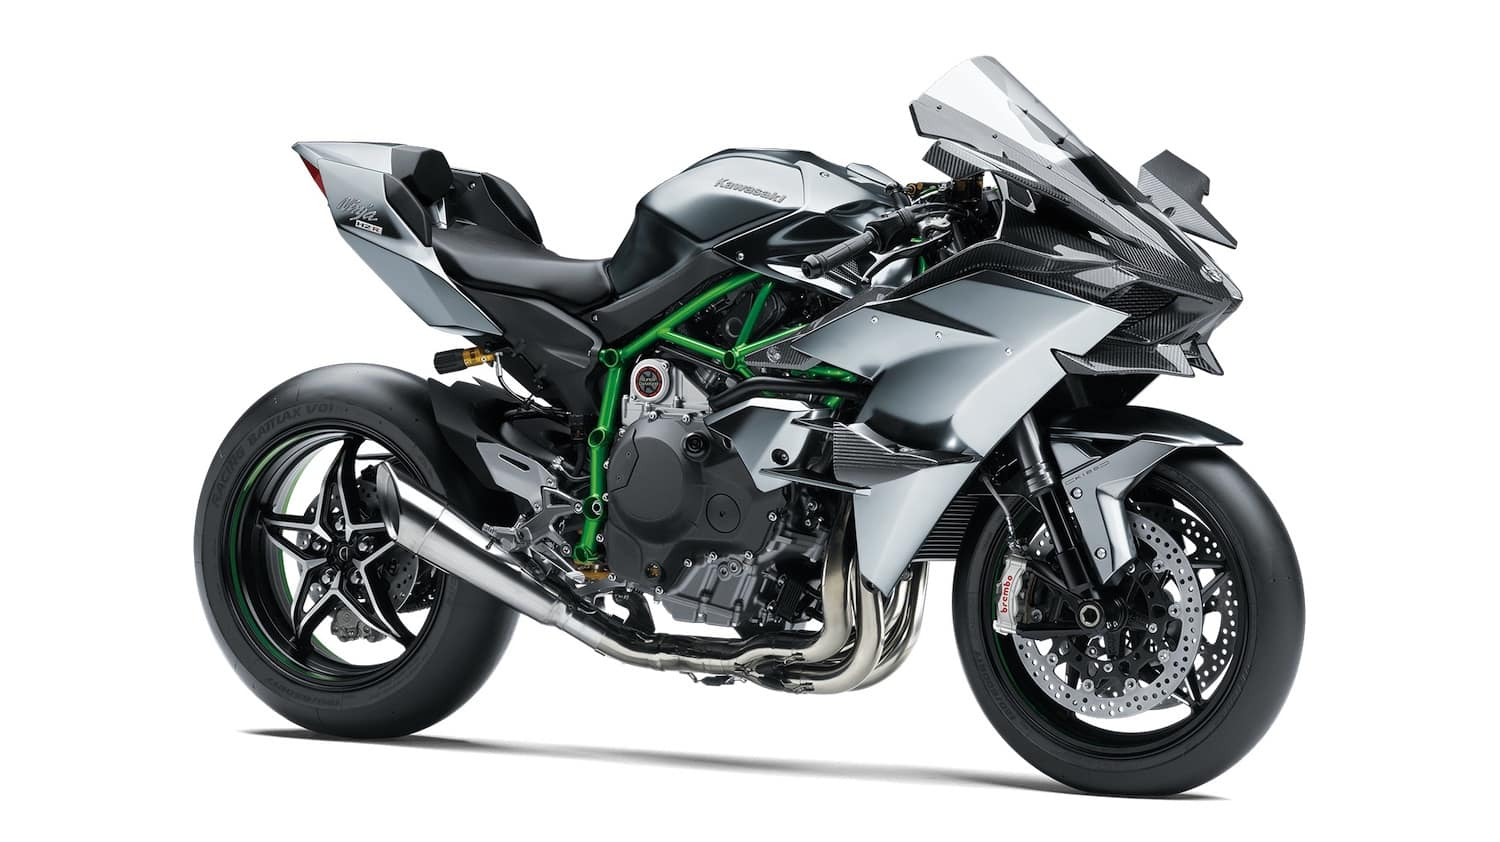 Kawasaki Ninja H2R hypersport motorcycle - h2 range comparision